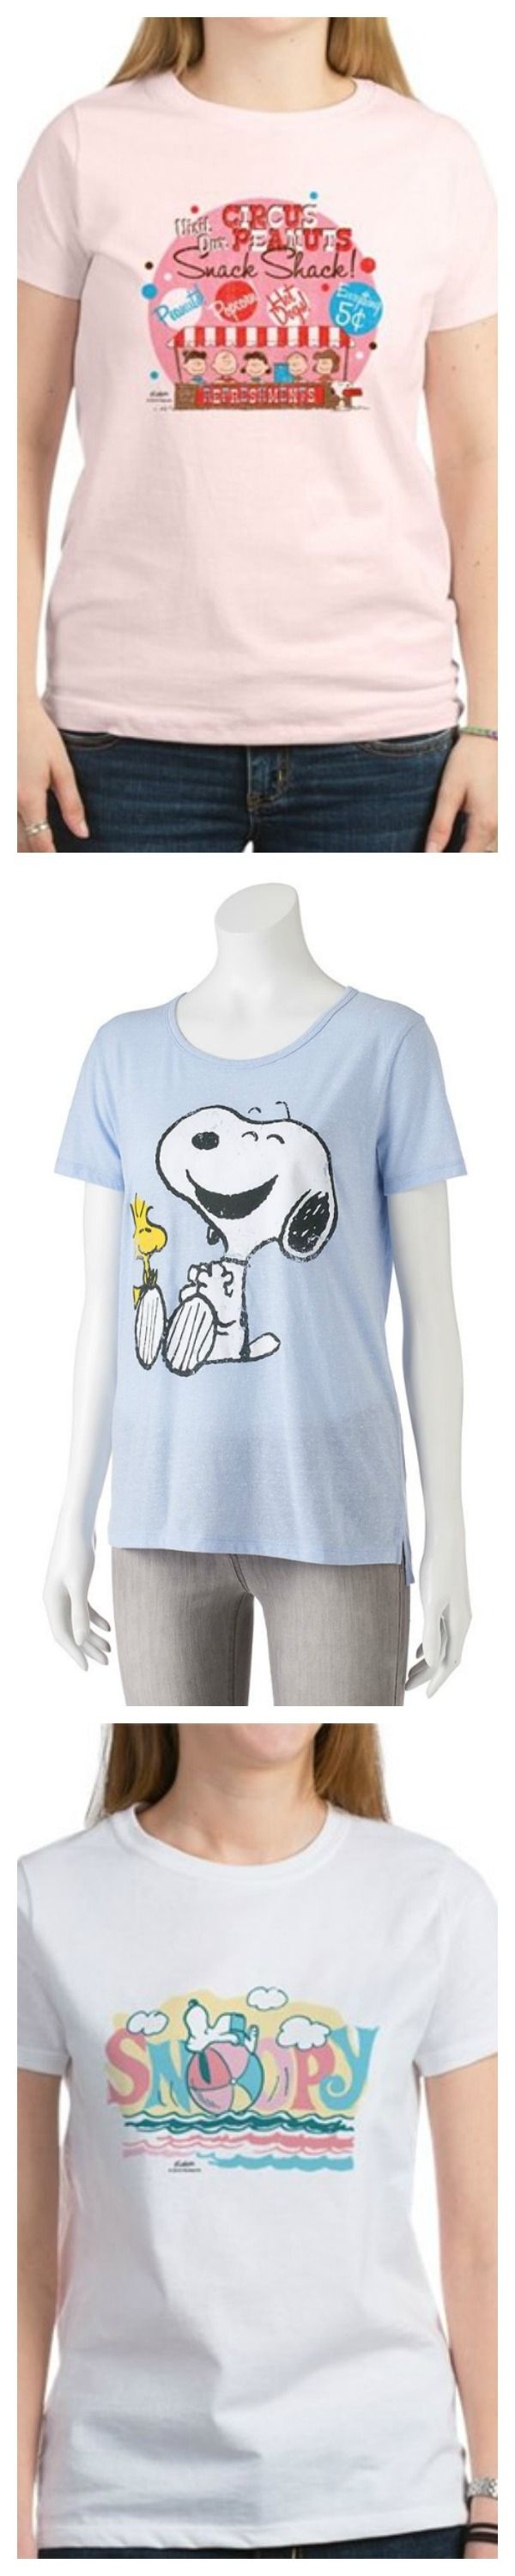 Peanuts clothing store